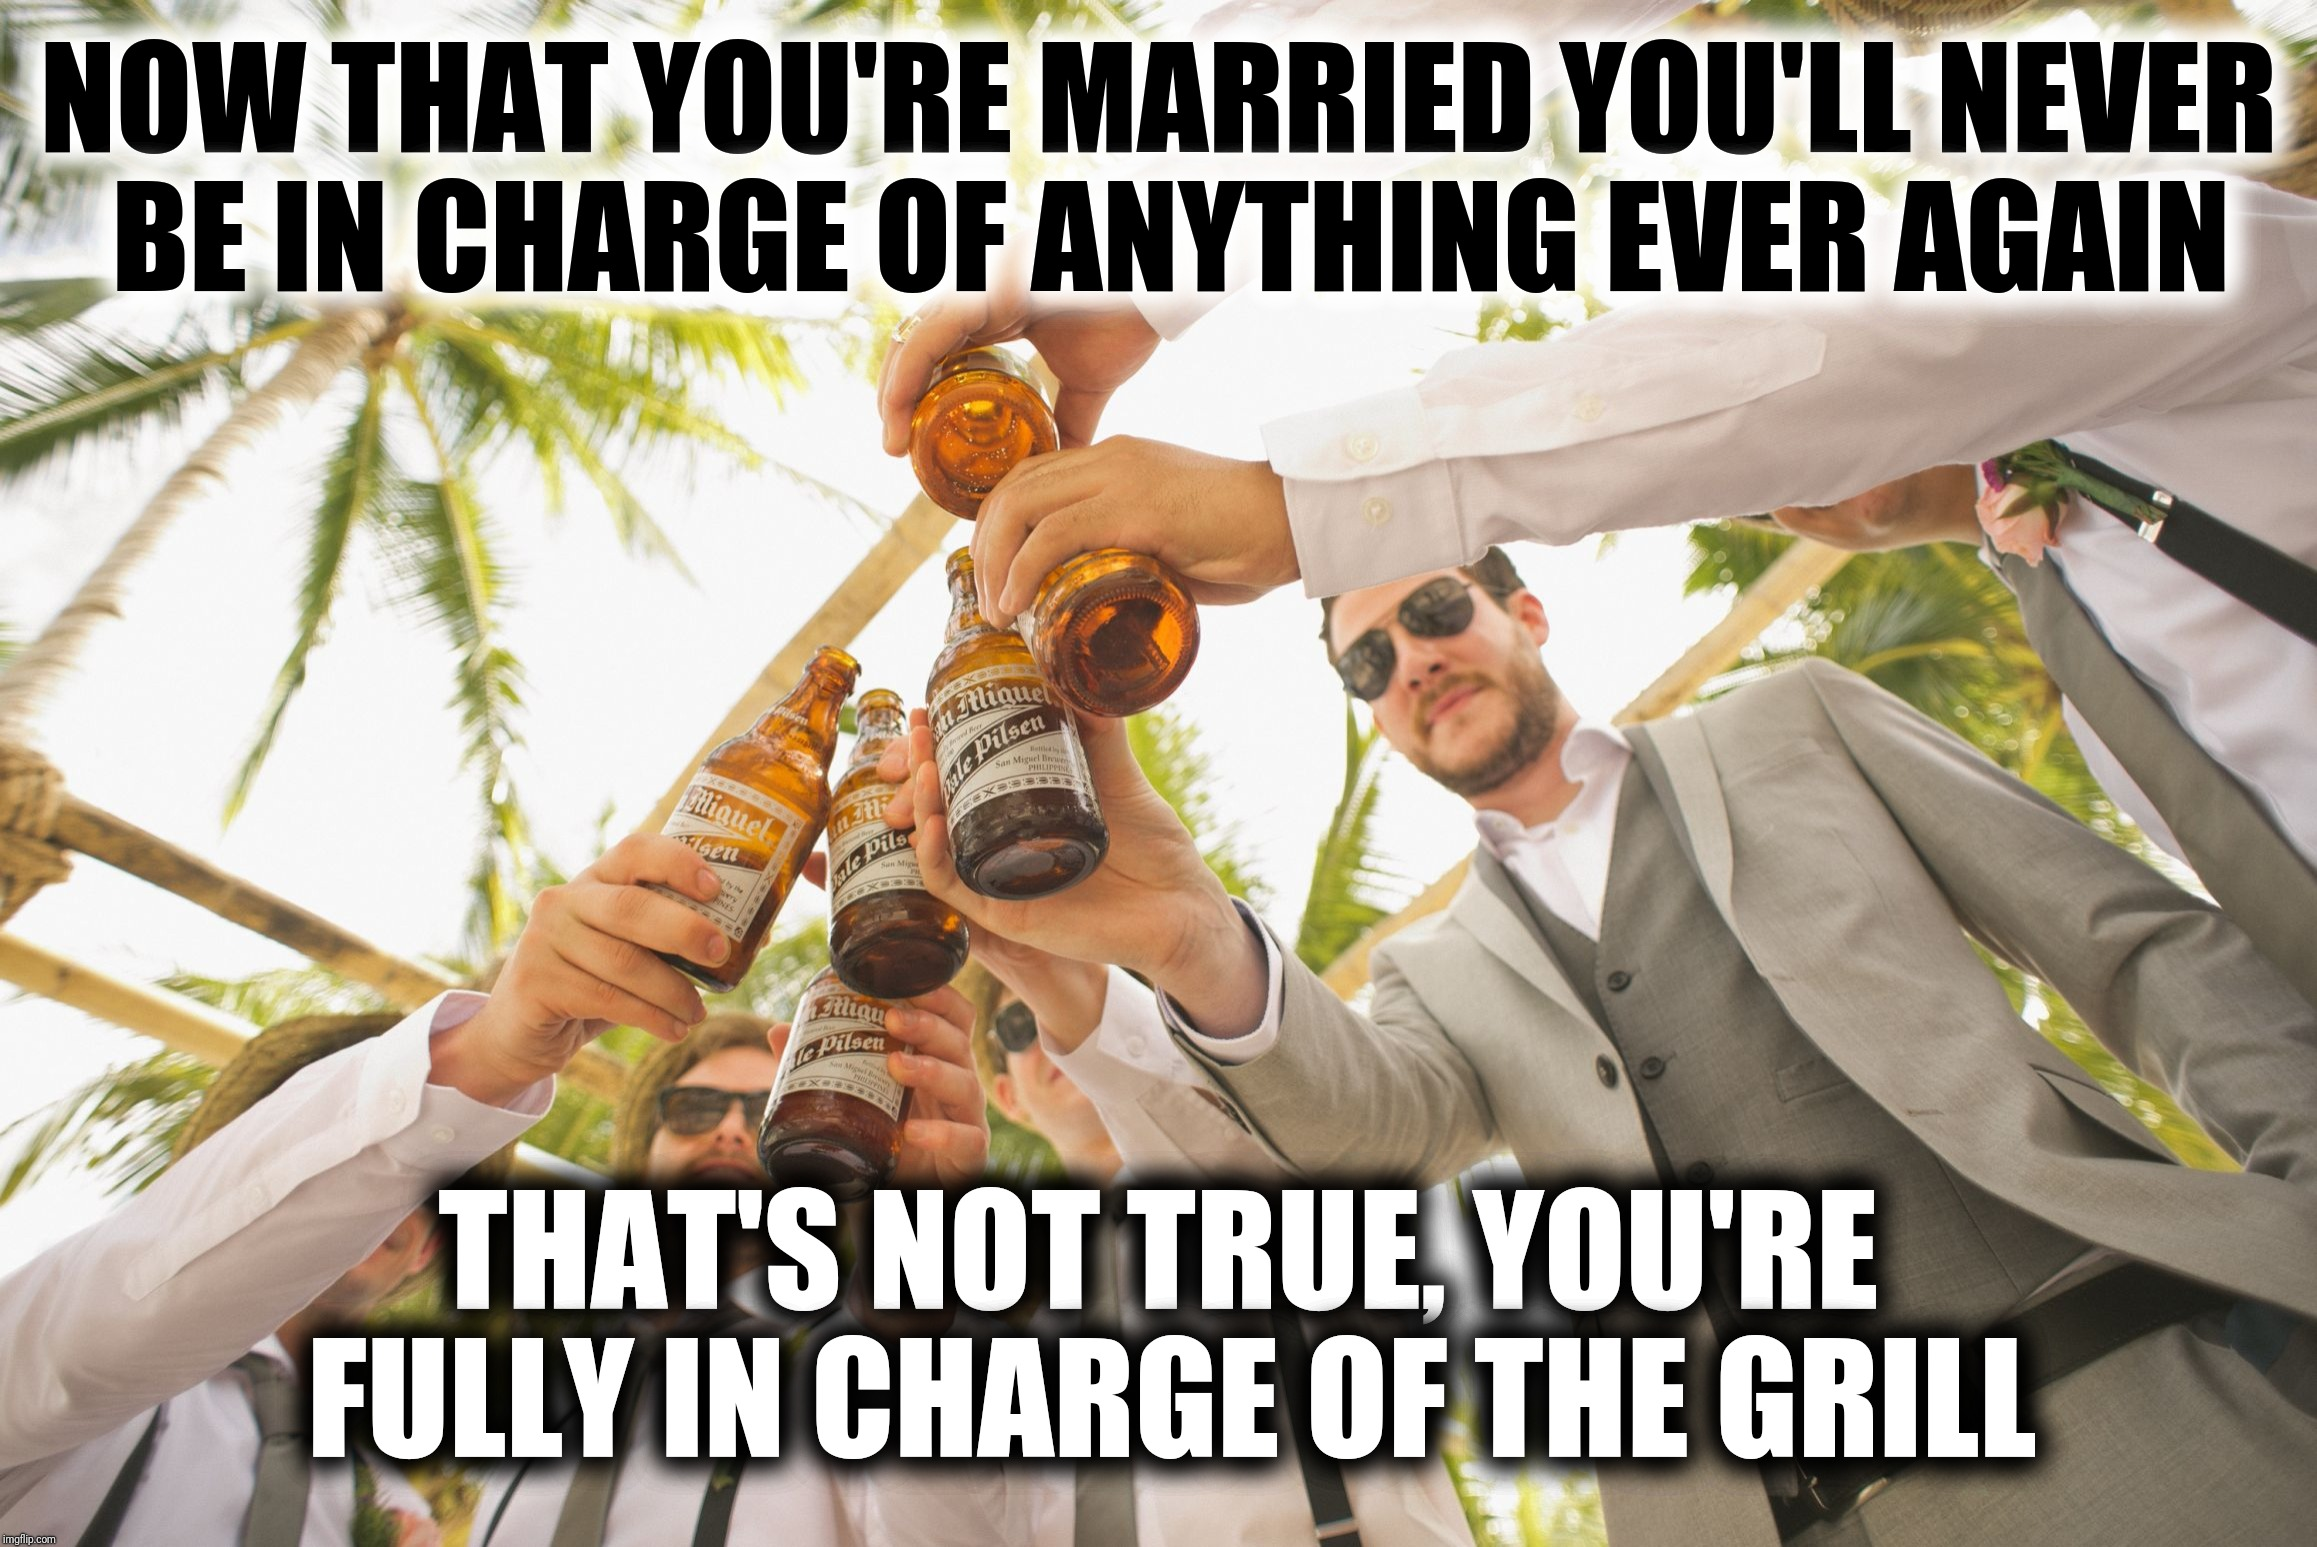 At Least You're Still In Charge Of The Grill | NOW THAT YOU'RE MARRIED YOU'LL NEVER BE IN CHARGE OF ANYTHING EVER AGAIN THAT'S NOT TRUE, YOU'RE FULLY IN CHARGE OF THE GRILL | image tagged in condolences for the groom,grill,wedding,relationship advice | made w/ Imgflip meme maker